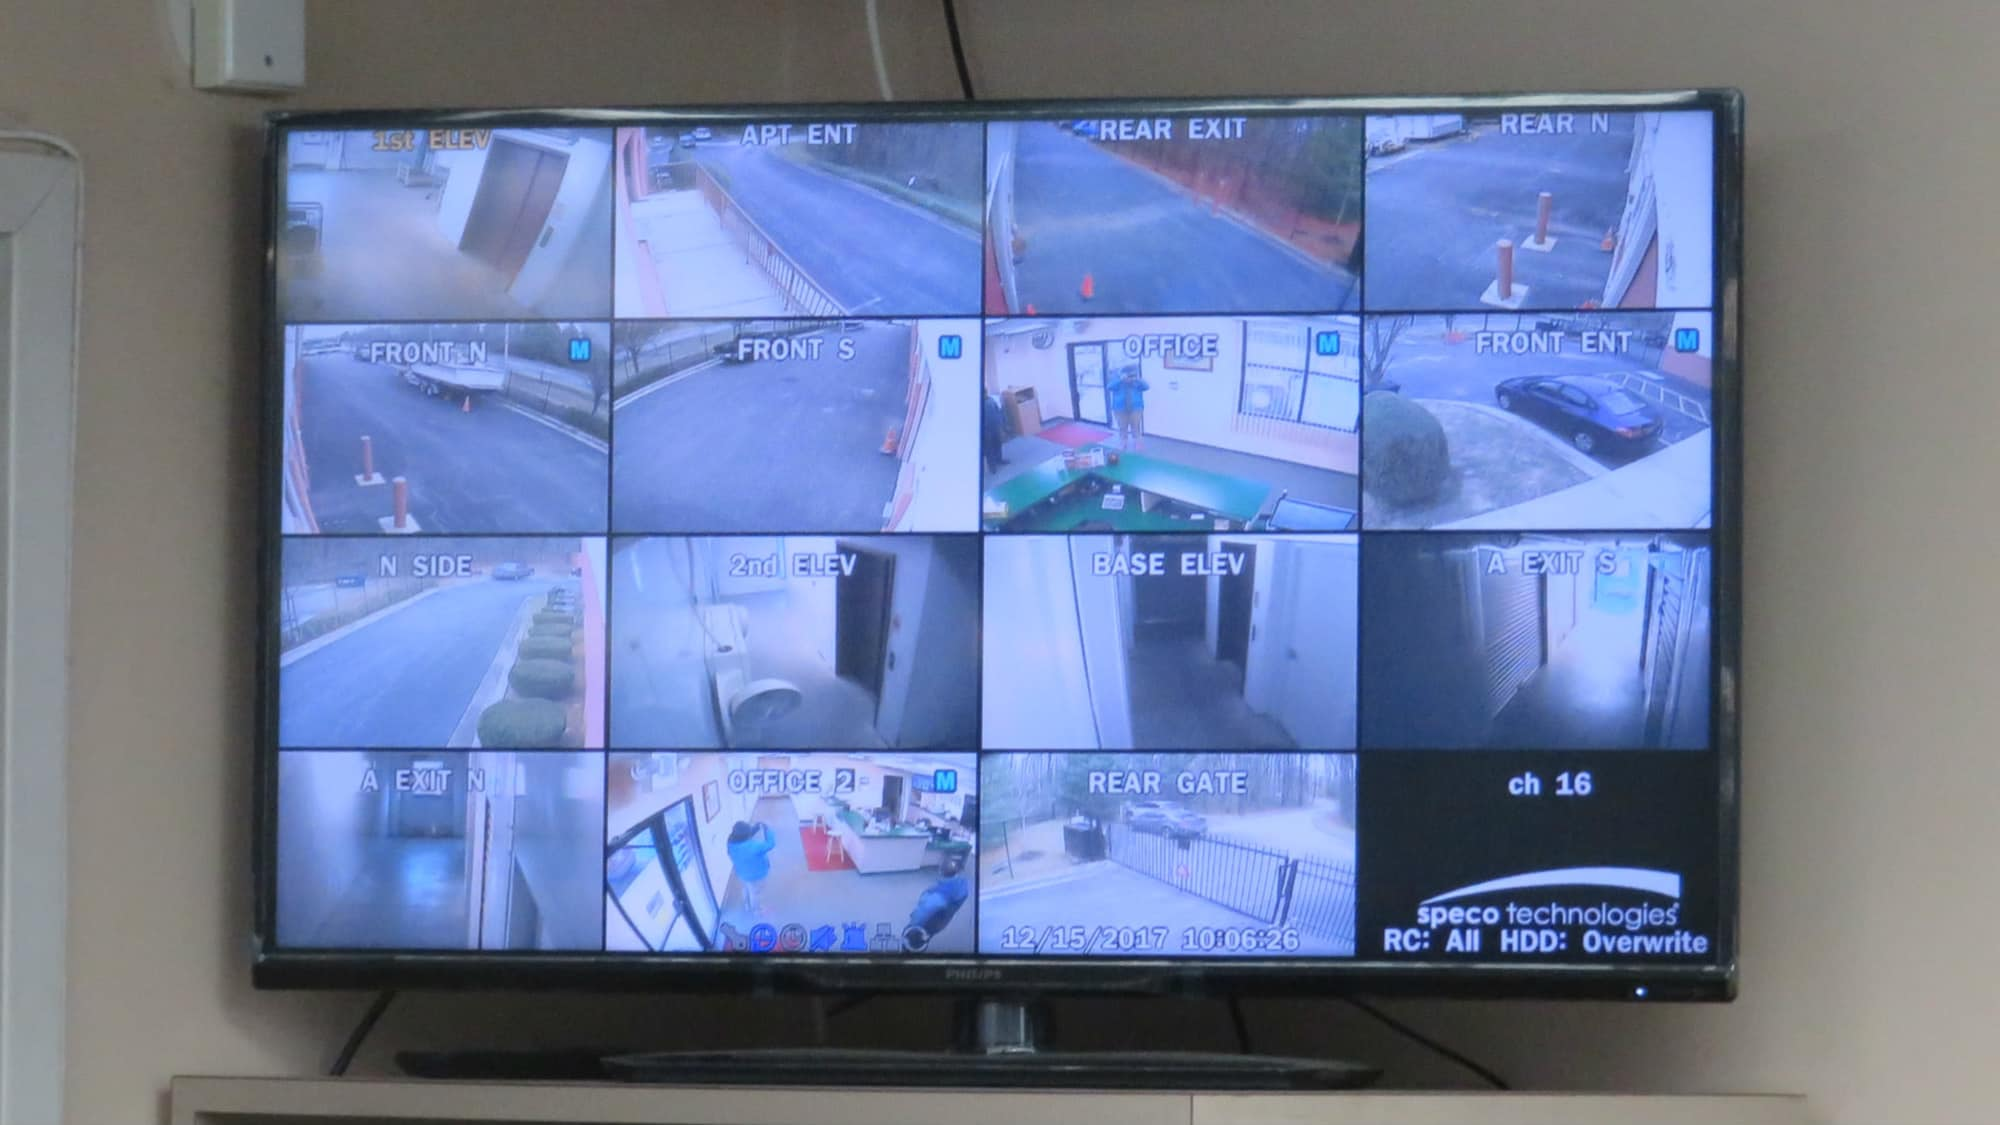 Security monitoring at Odenton Self Storage in Odenton, Maryland